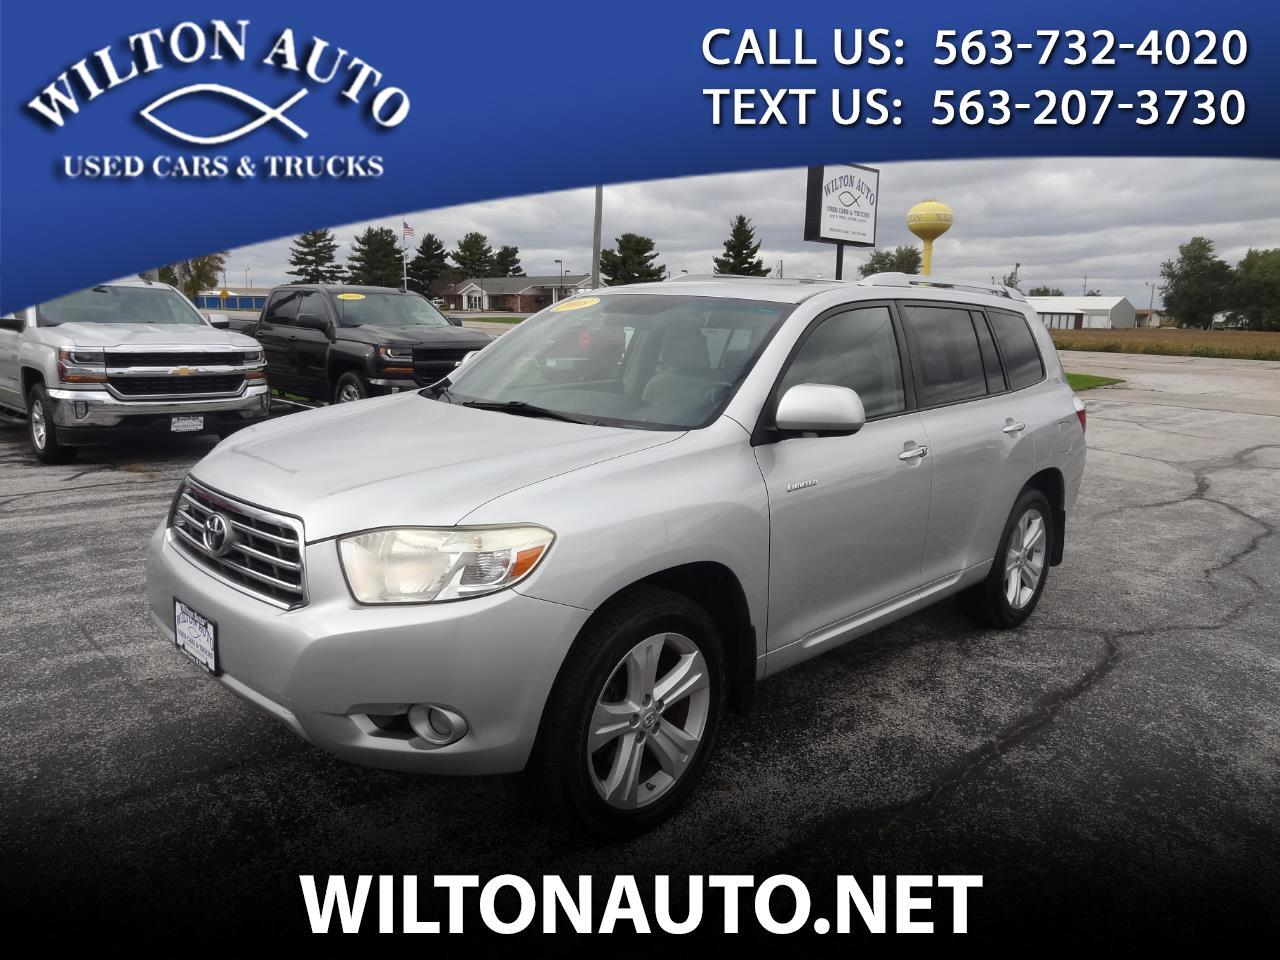 2008 Toyota Highlander 4WD 4dr Limited (Natl)